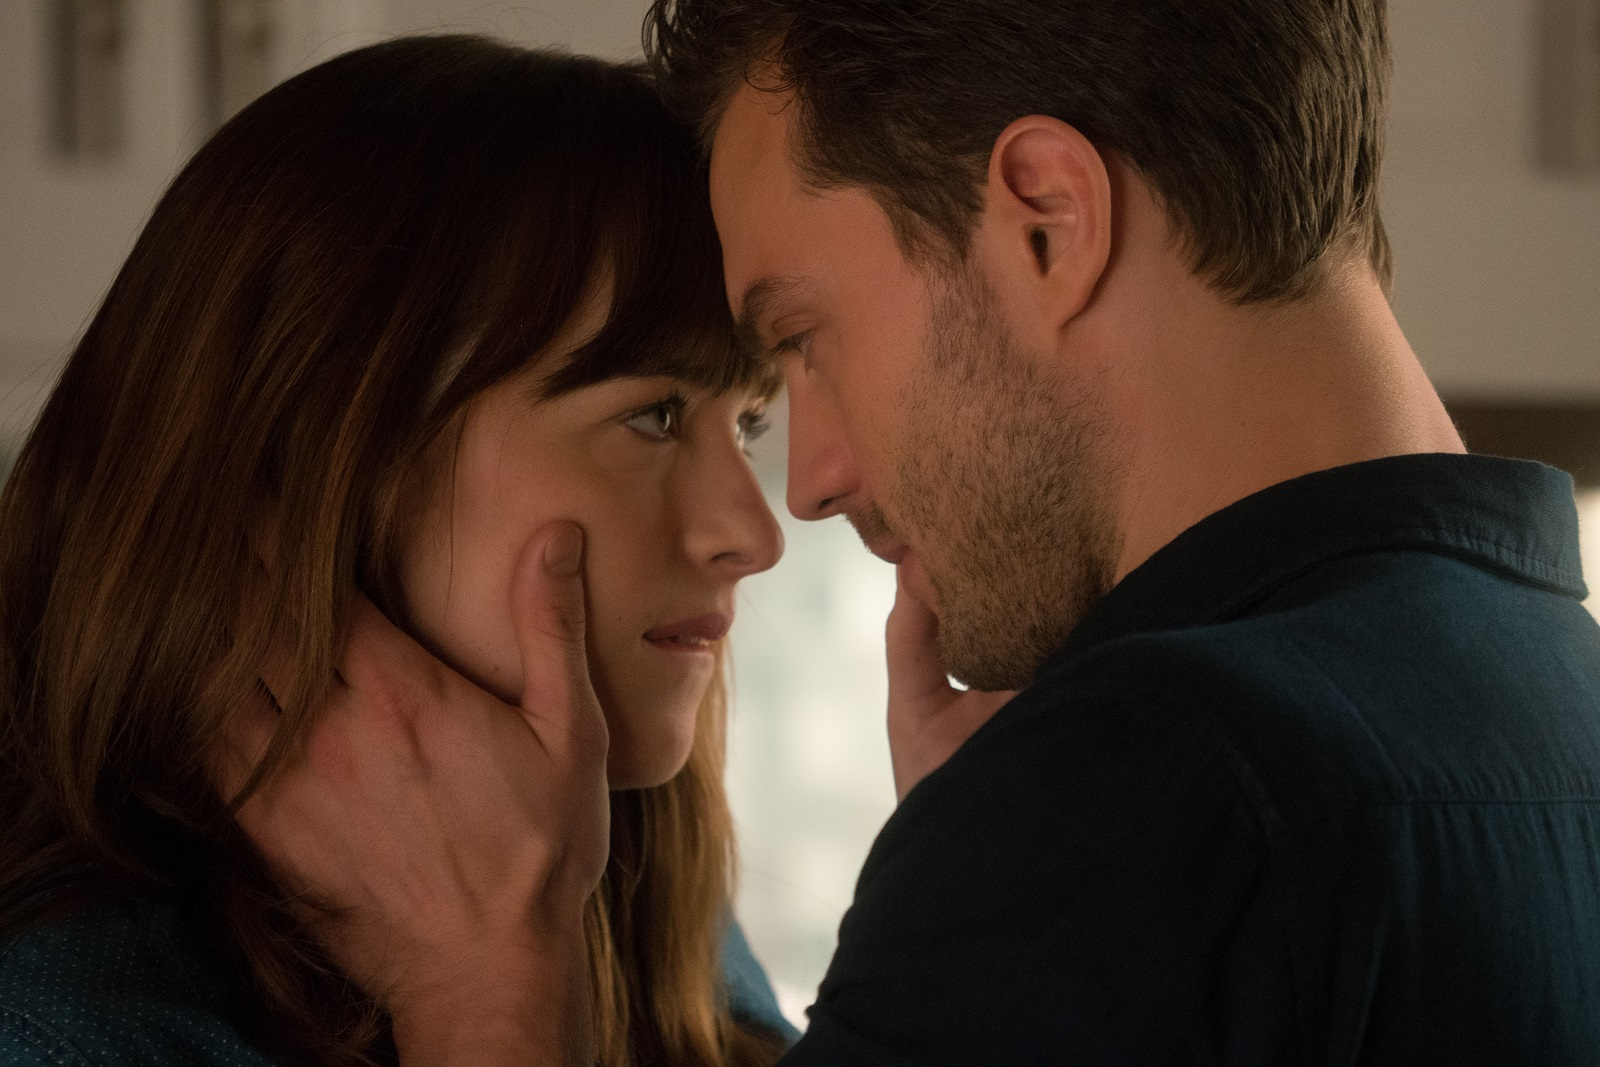 """Dakota Johnson and Jamie Dornan return as Anastasia Steele and Christian Grey in 'Fifty Shades Darker,' the second chapter based on the worldwide bestselling """"Fifty Shades"""" phenomenon."""